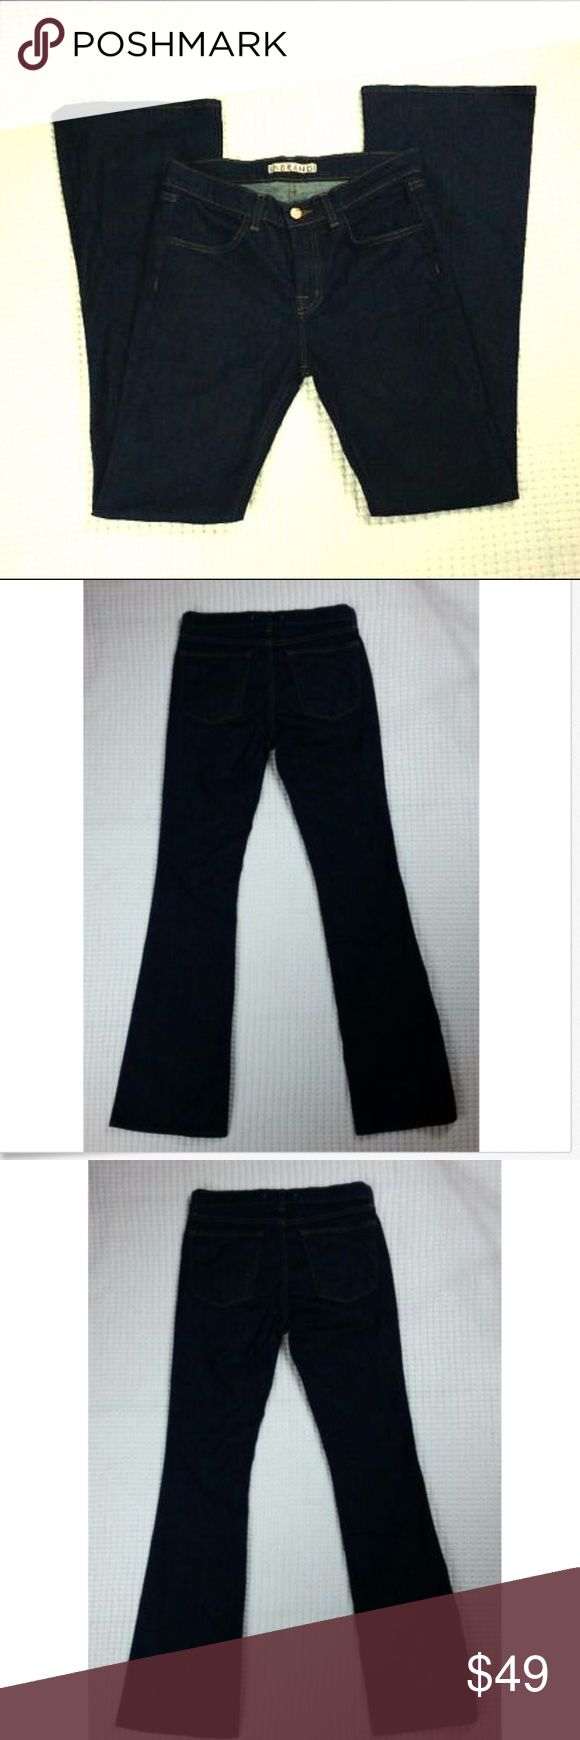 """J Brand Jeans Flare Lexington Pure Dark Wash 28 J brand Womens Jeans Lexington Flare Pure Dark Wash Denim Mid Rise Stretch Sz 28 Size: 28 Style: Lexington Flare. Style # 2345C032. Cut # 5365. RN # 117965 Wash: Pure Dark Wash Blue Materials: 94% Cotton; 5% Polyester; 1% Spandex  Measurements (approximate) Waist (laying flat): 15""""  Inseam: 33 1/4"""" Rise: 9 3/4"""" Outseam: 43.5"""" Leg Opening (laying flat): 10""""  Condition:  Good pre-owned condition. J Brand Jeans Flare & Wide Leg"""